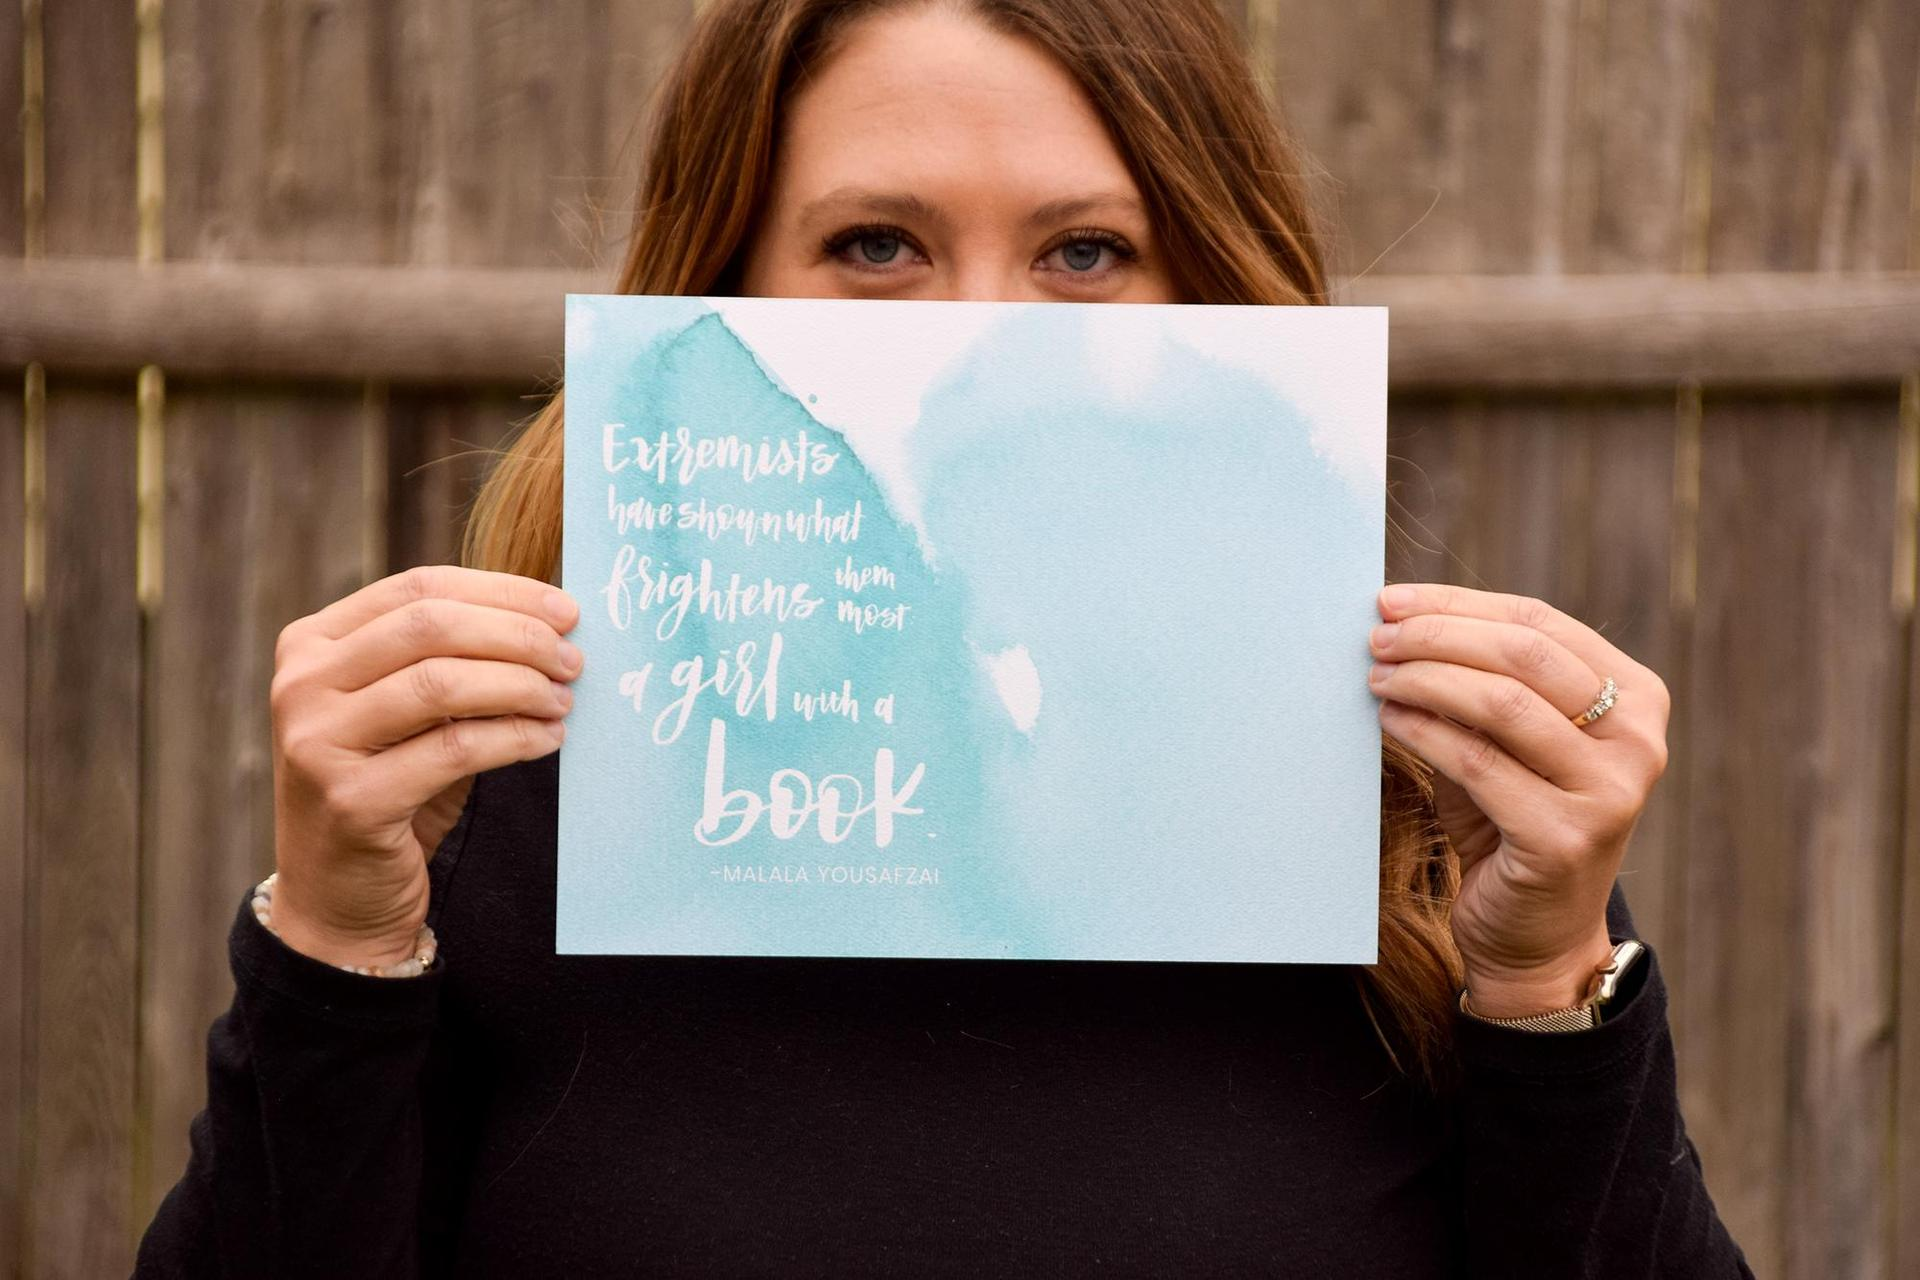 Woman holding up a card with an inspirational quote, face partially hidden